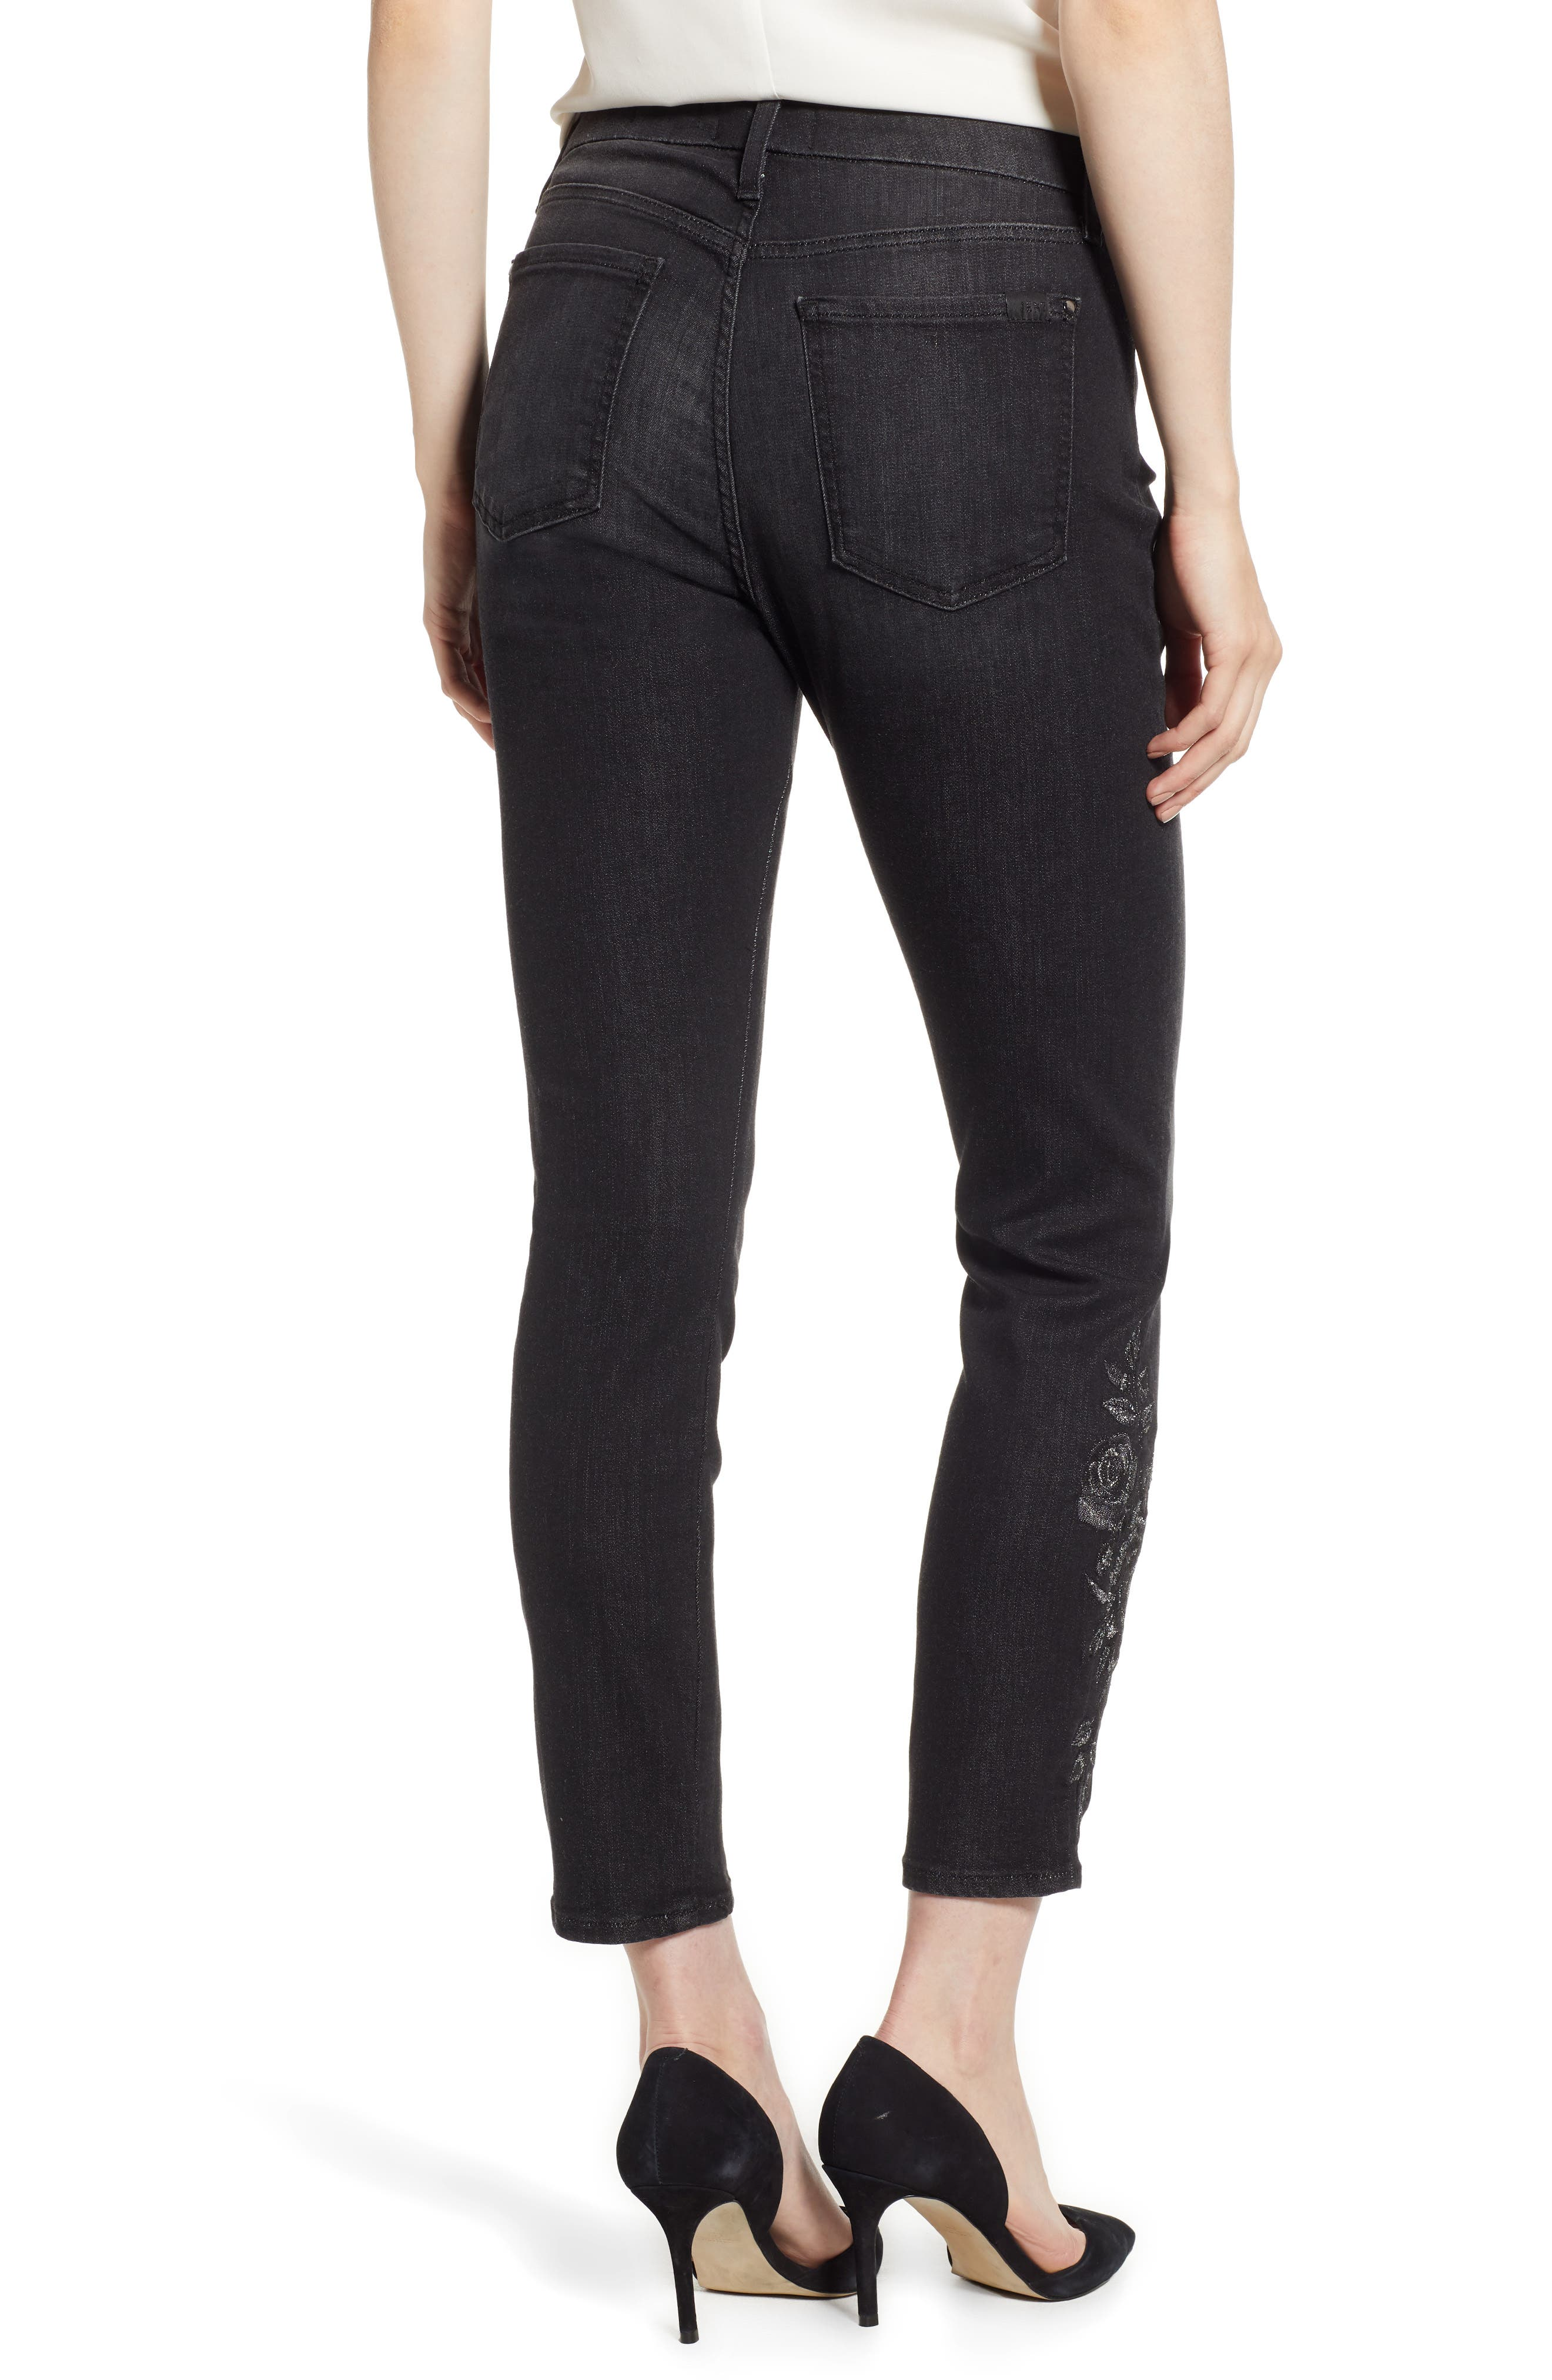 JEN7 BY 7 FOR ALL MANKIND, Embroidered Ankle Skinny Jeans, Alternate thumbnail 2, color, RICHE TOUCH AGED BLACK